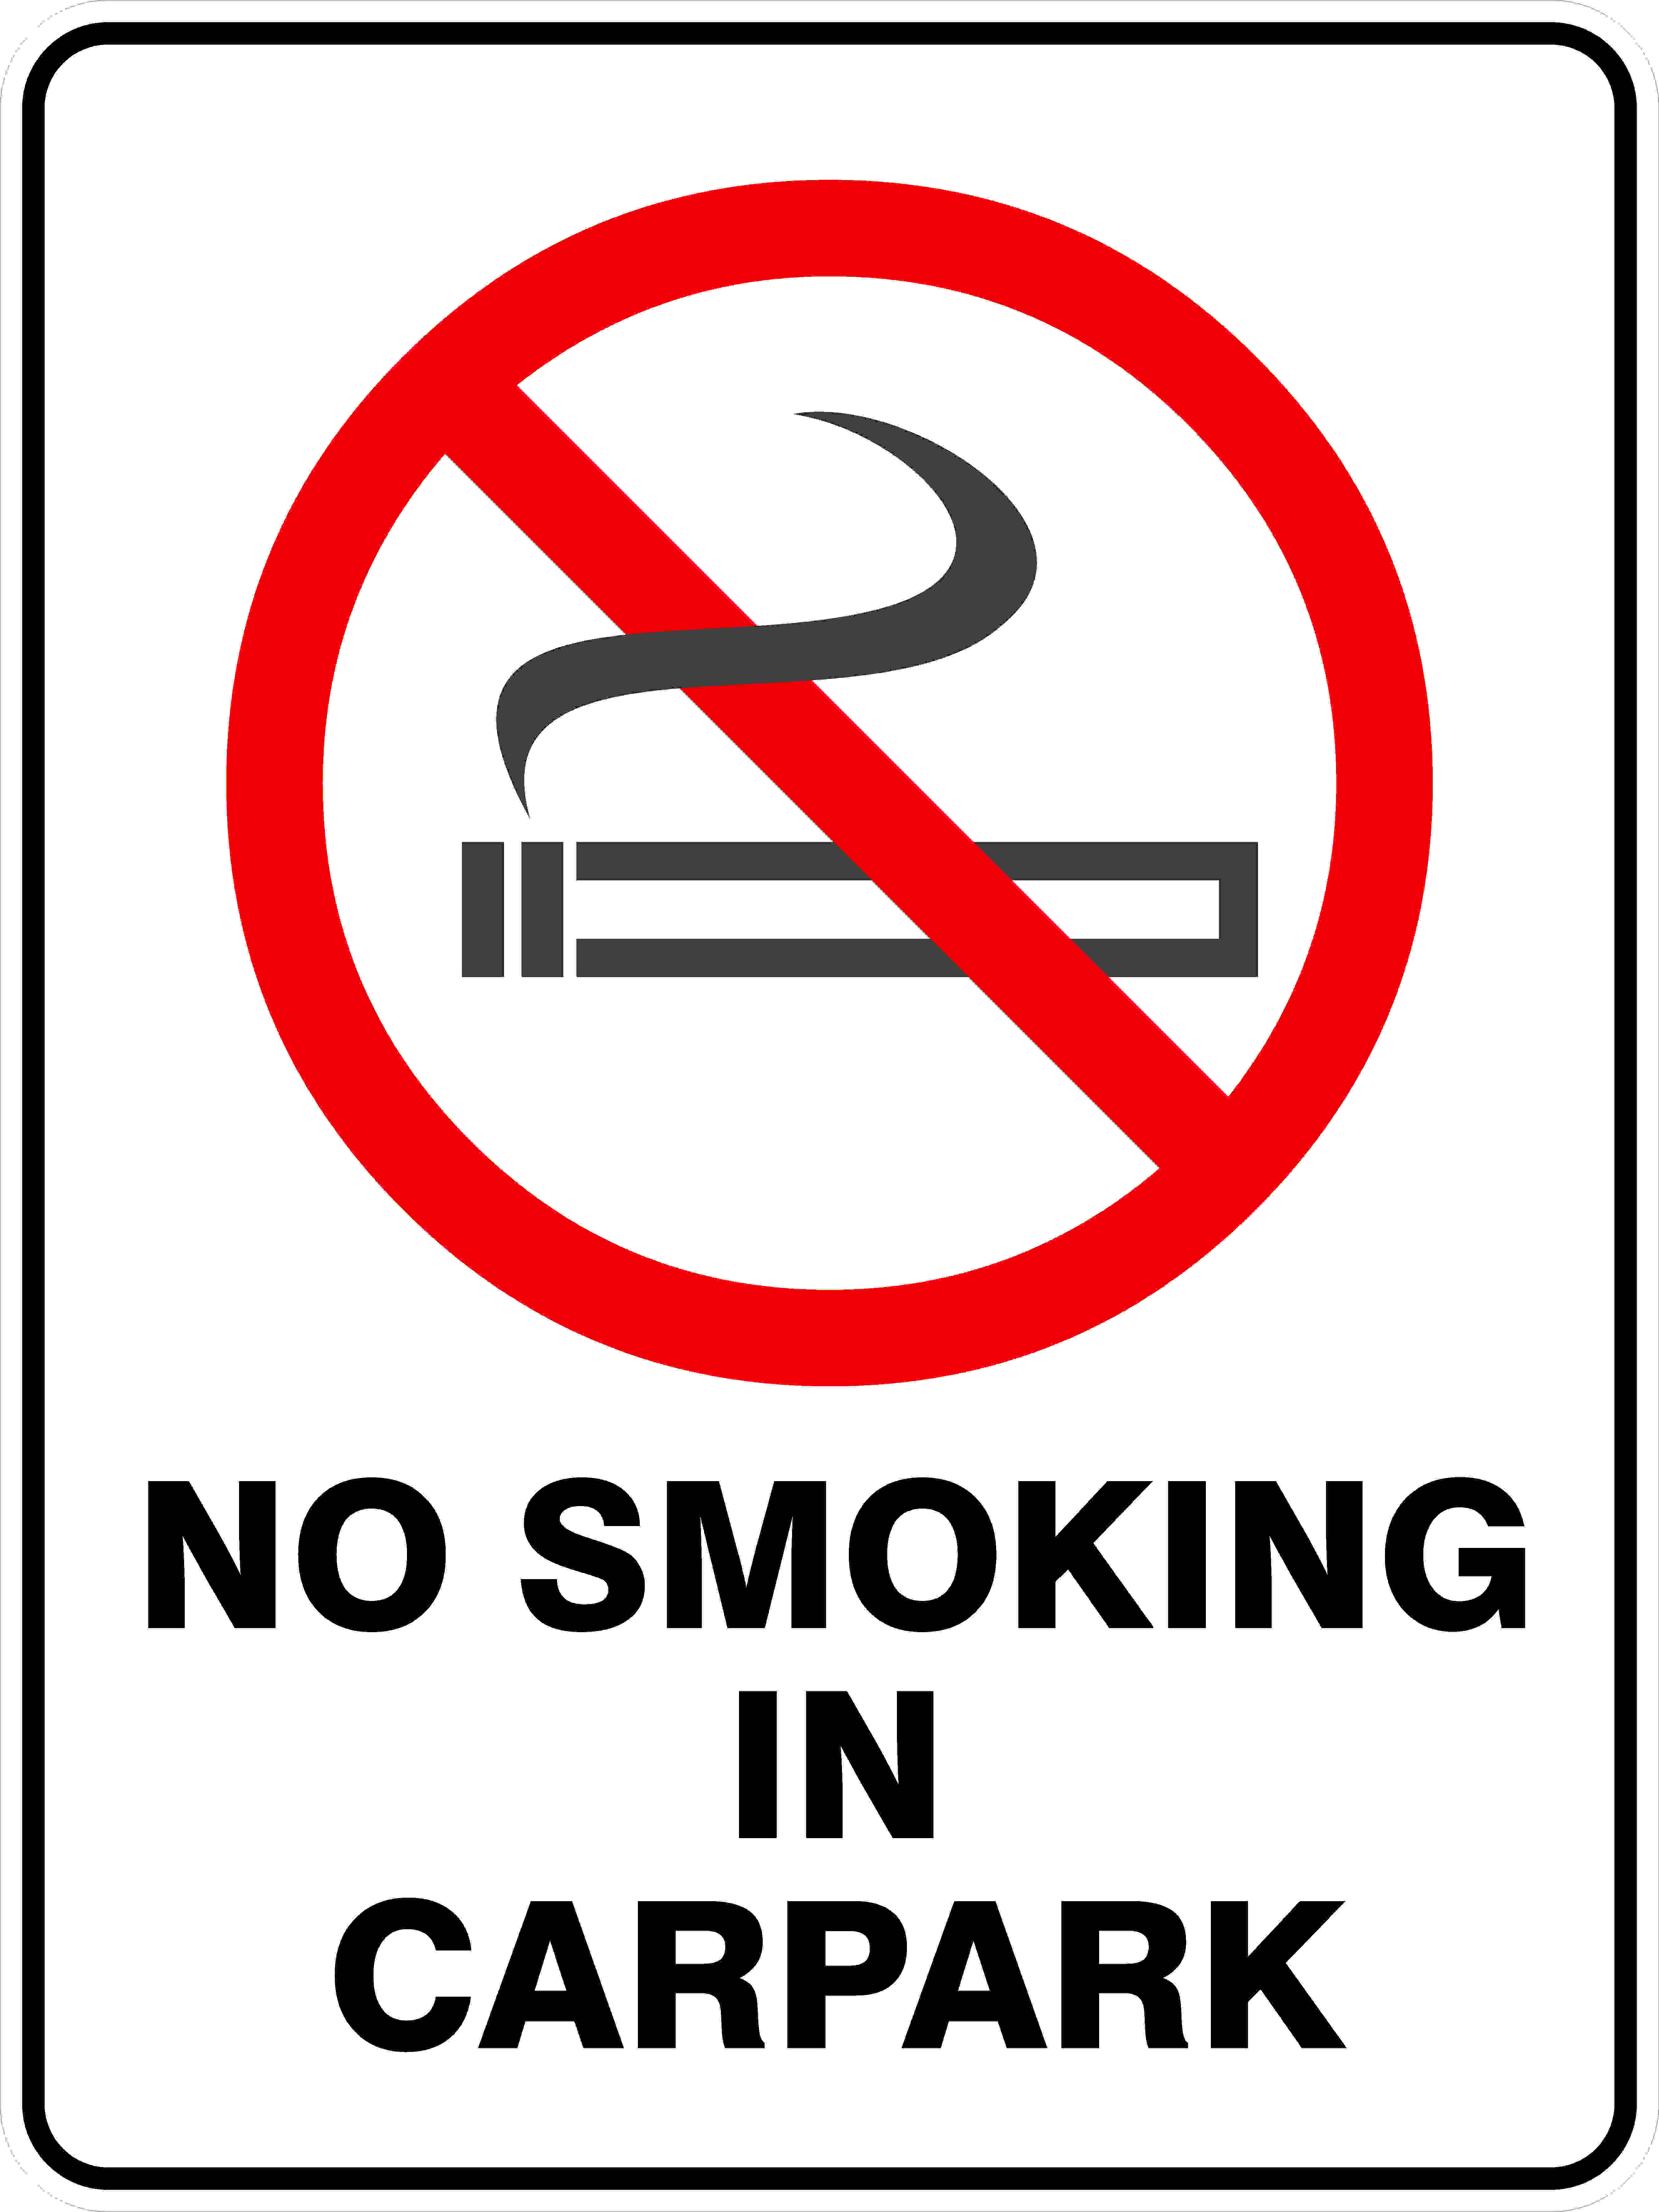 Prohibition Signs NO SMOKING IN CARPARK